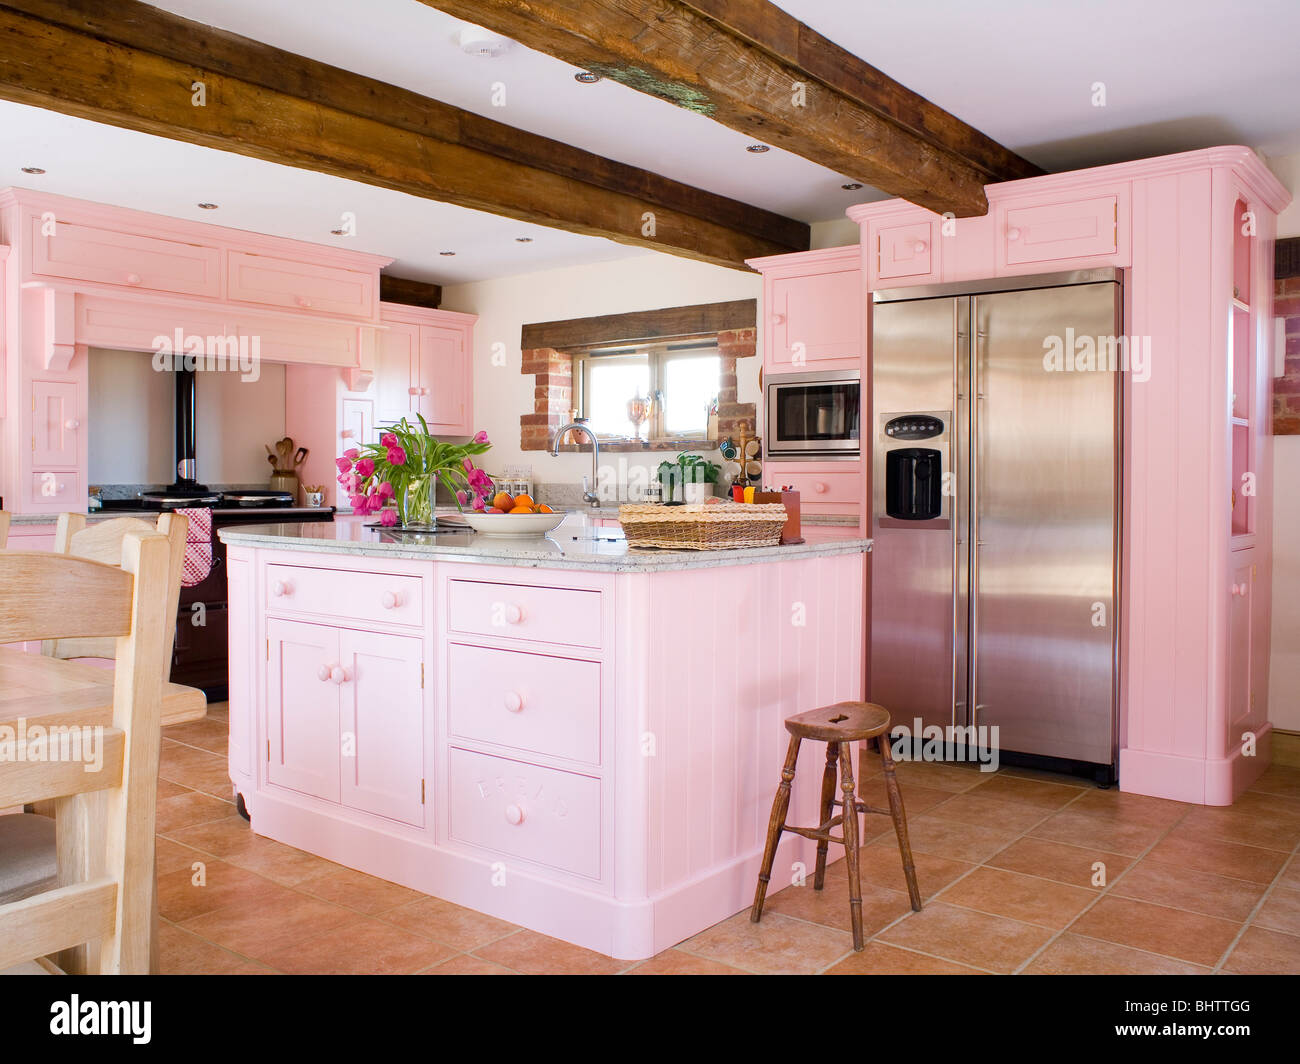 Pastel Pink Fitted Units And Island Unit In Country Kitchen With Stock